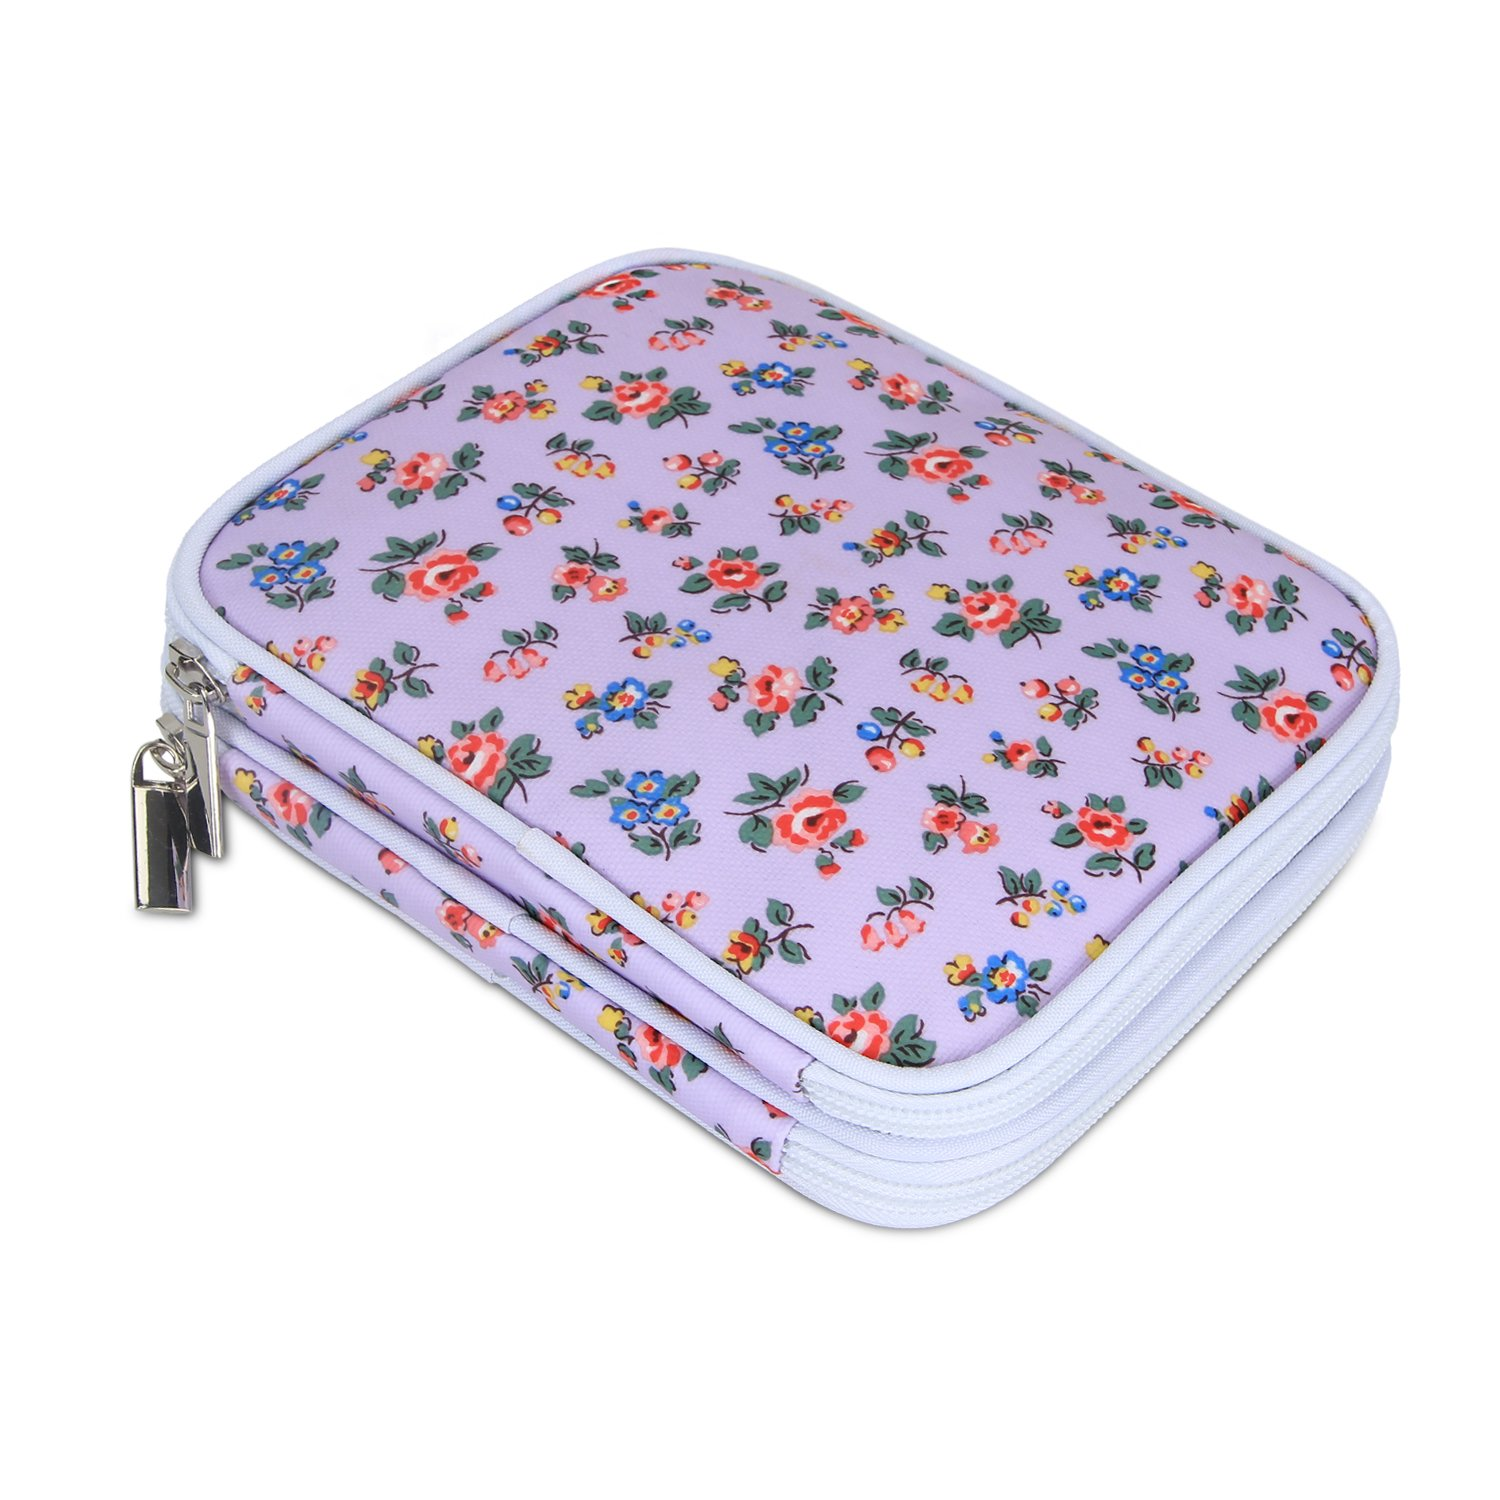 Amazon Teamoy Crochet Hook Case Travel Storage Bag For Various